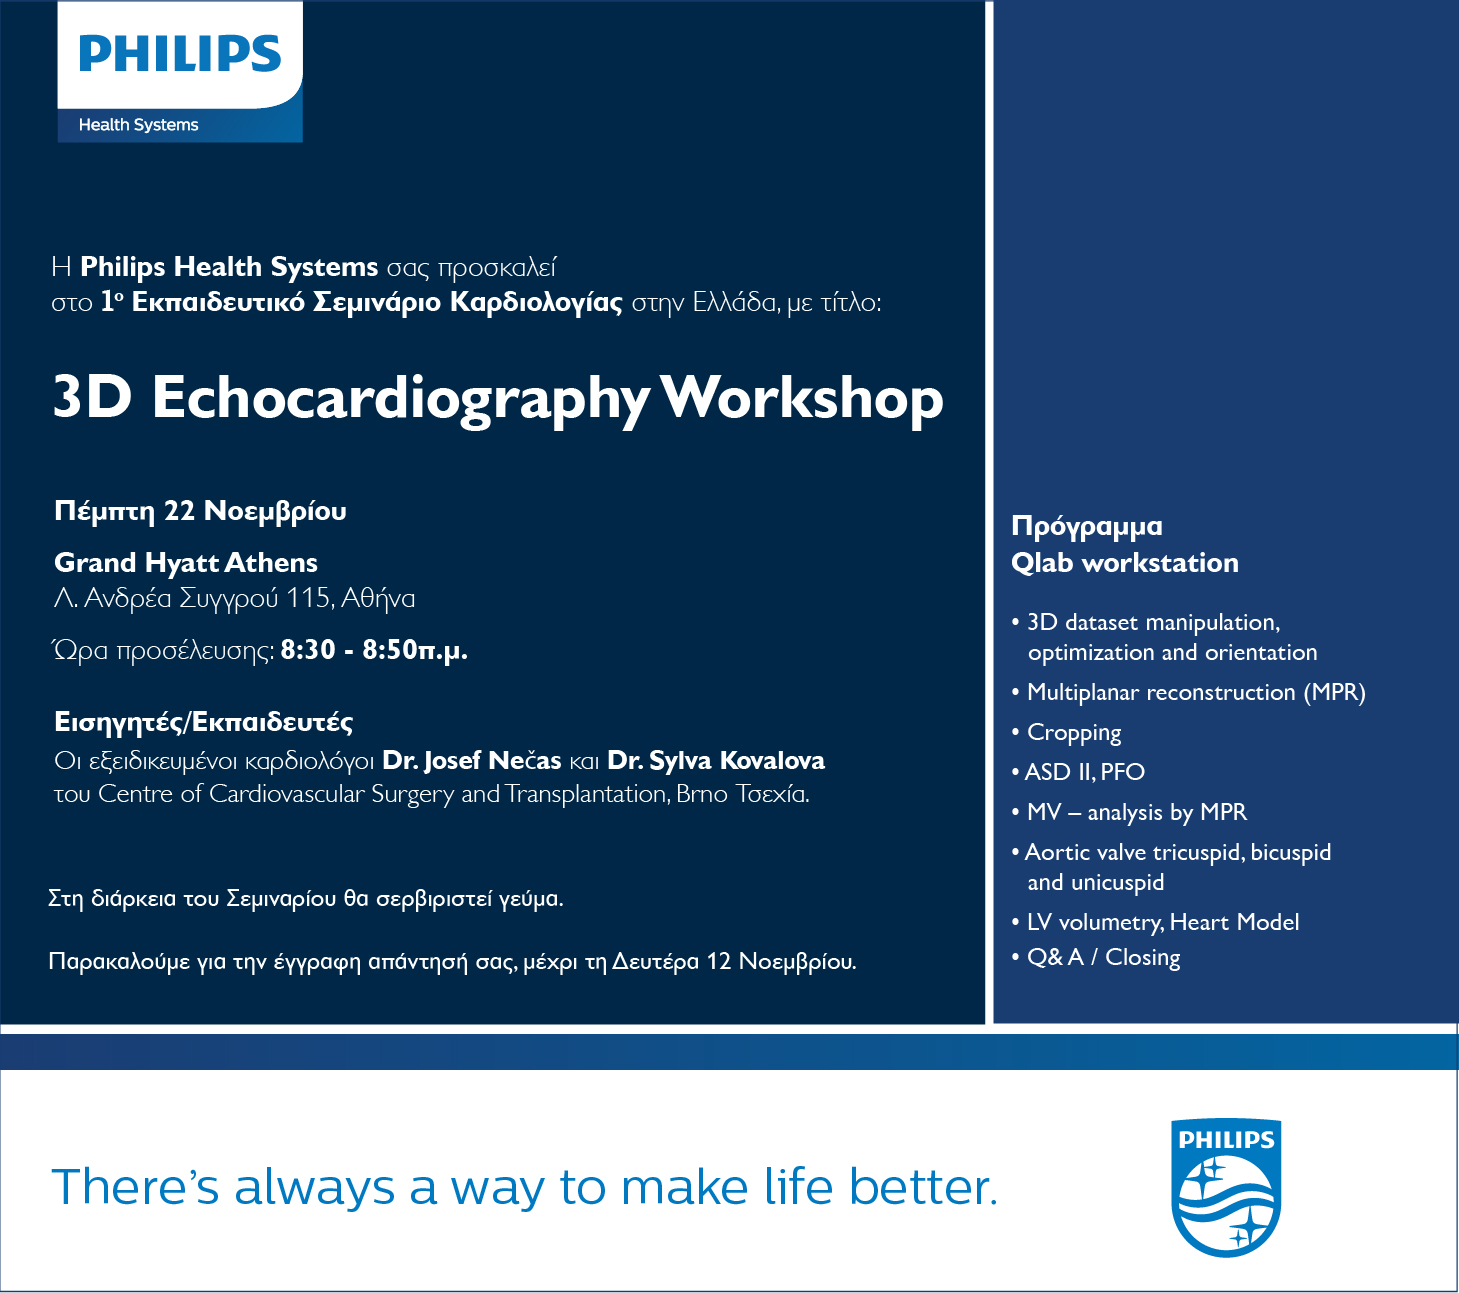 3D Echocardiography Workshop